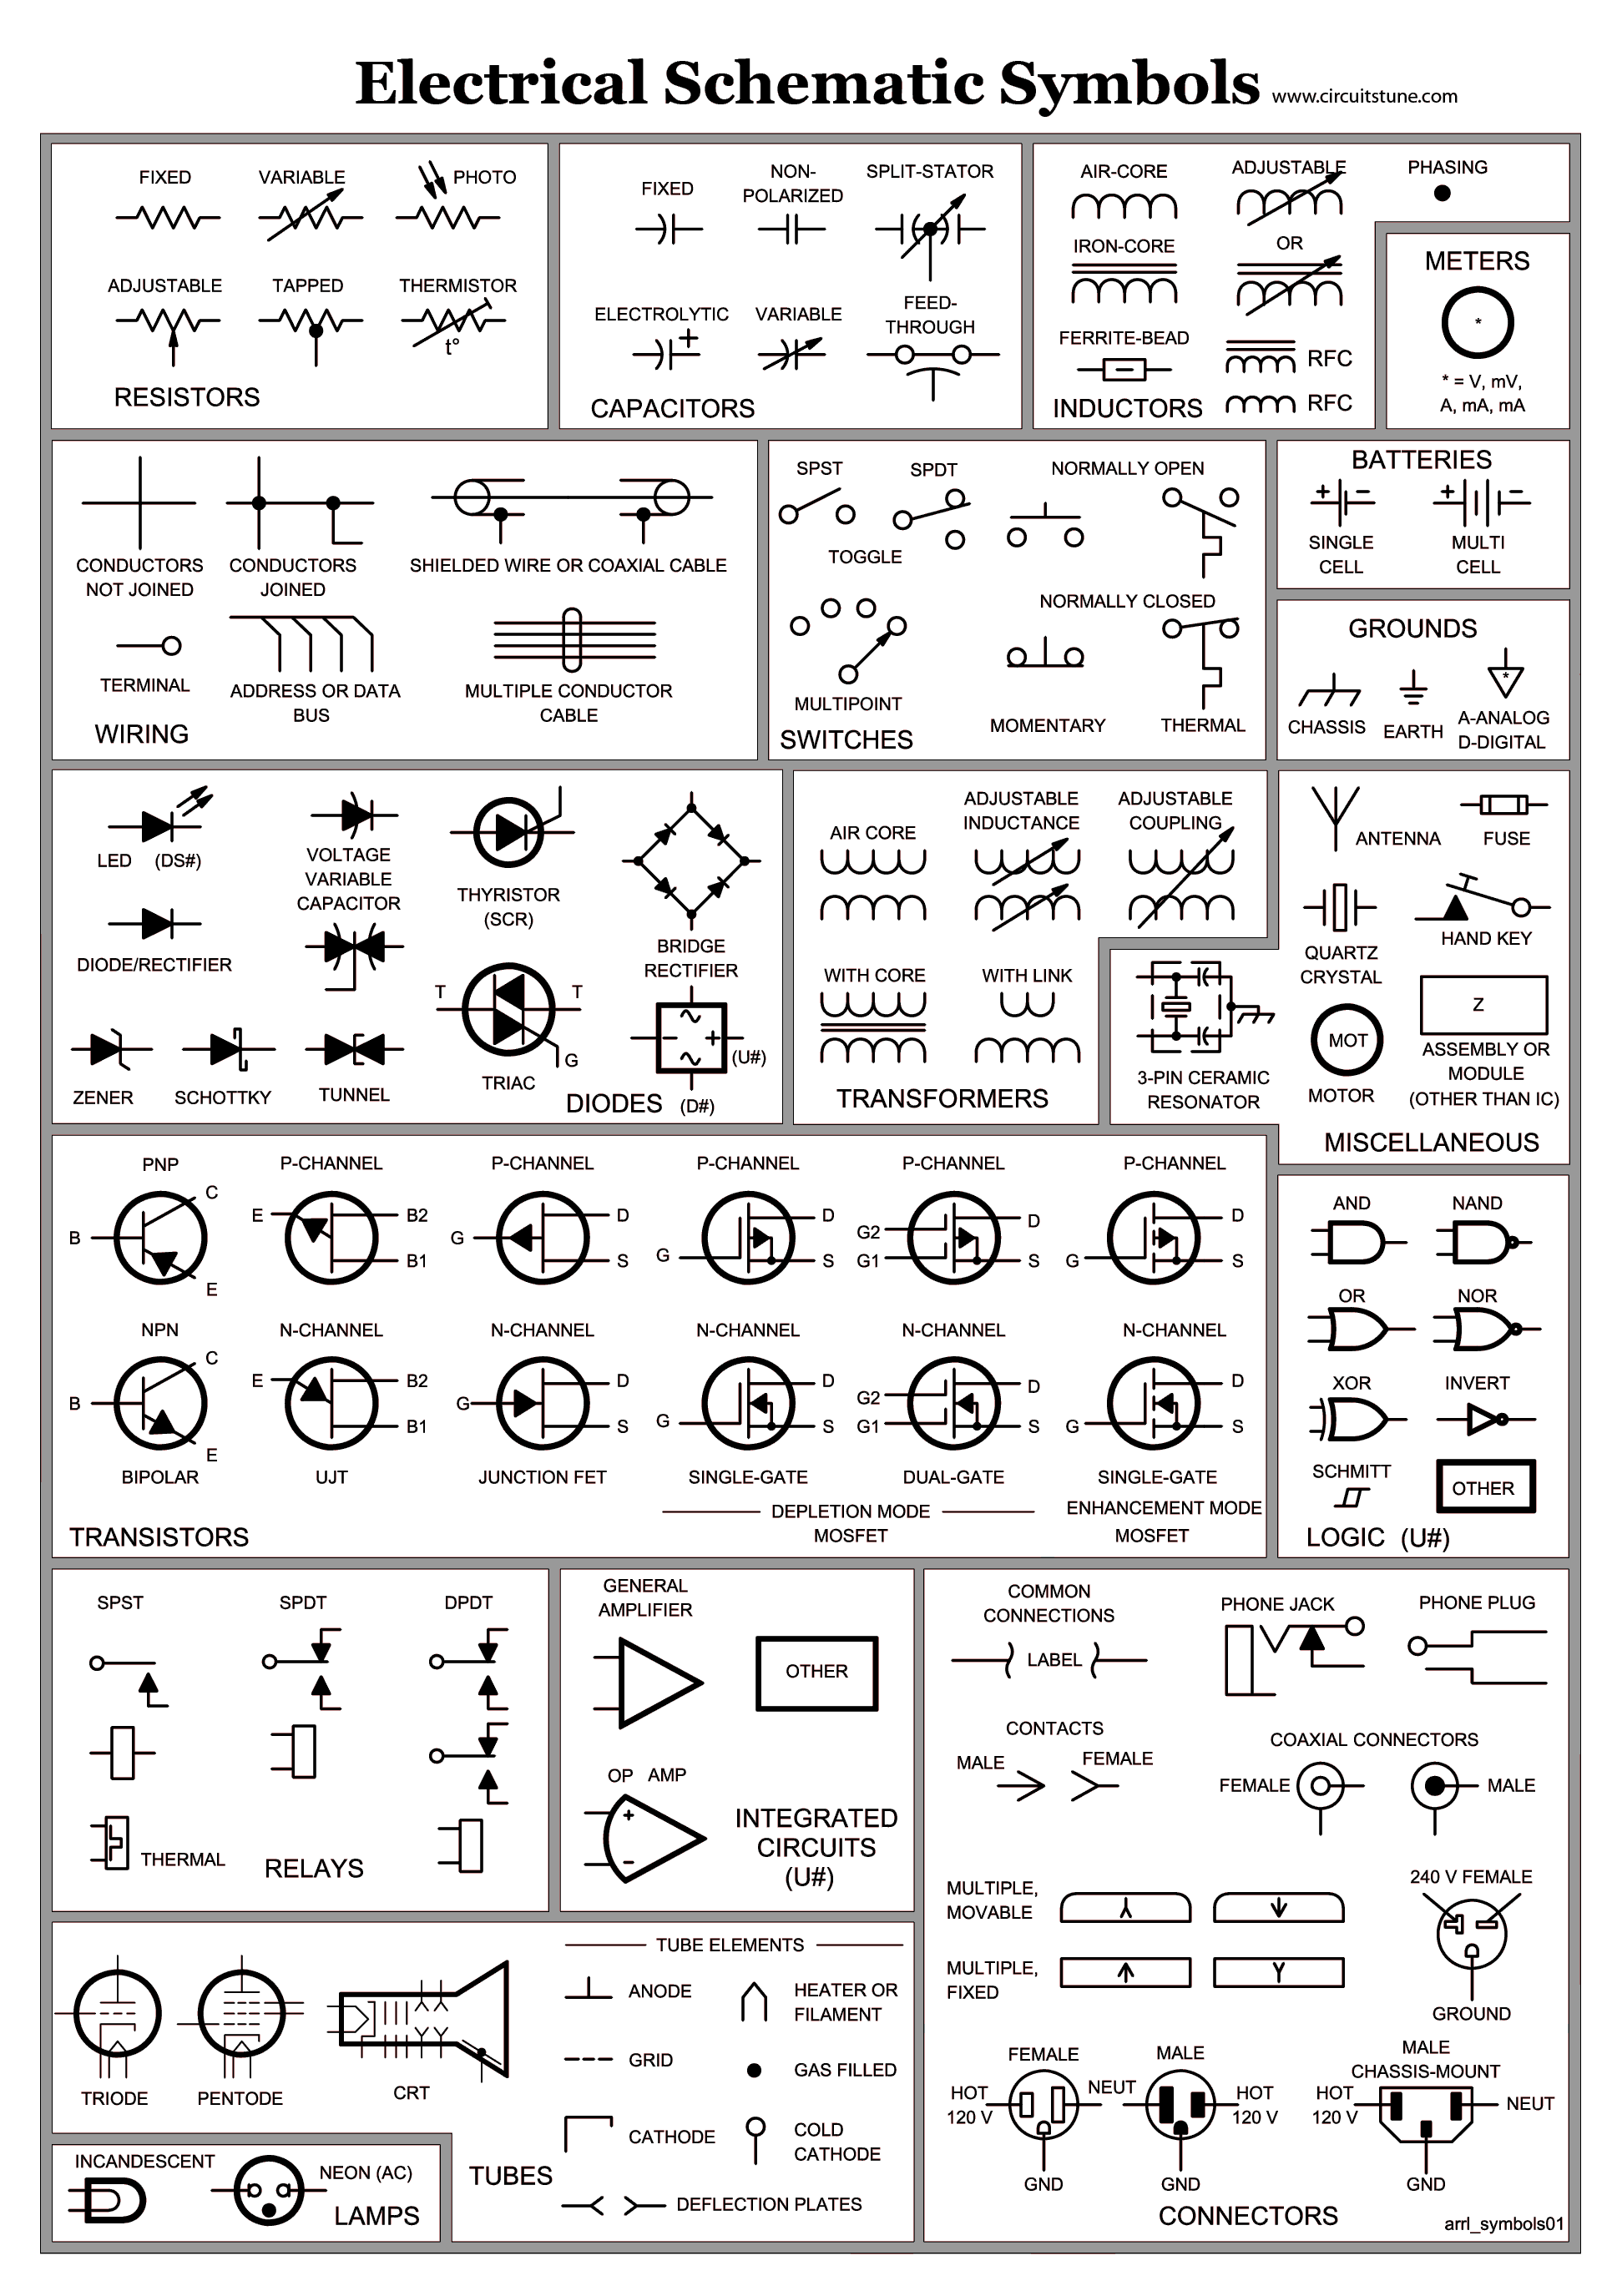 Hvac wiring symbols wiring diagrams schematics electrical wiring diagram symbols wiring diagrams schematics electrical schematic symbols wire diagram symbols automotive electrical schematic symbols wire cheapraybanclubmaster Gallery